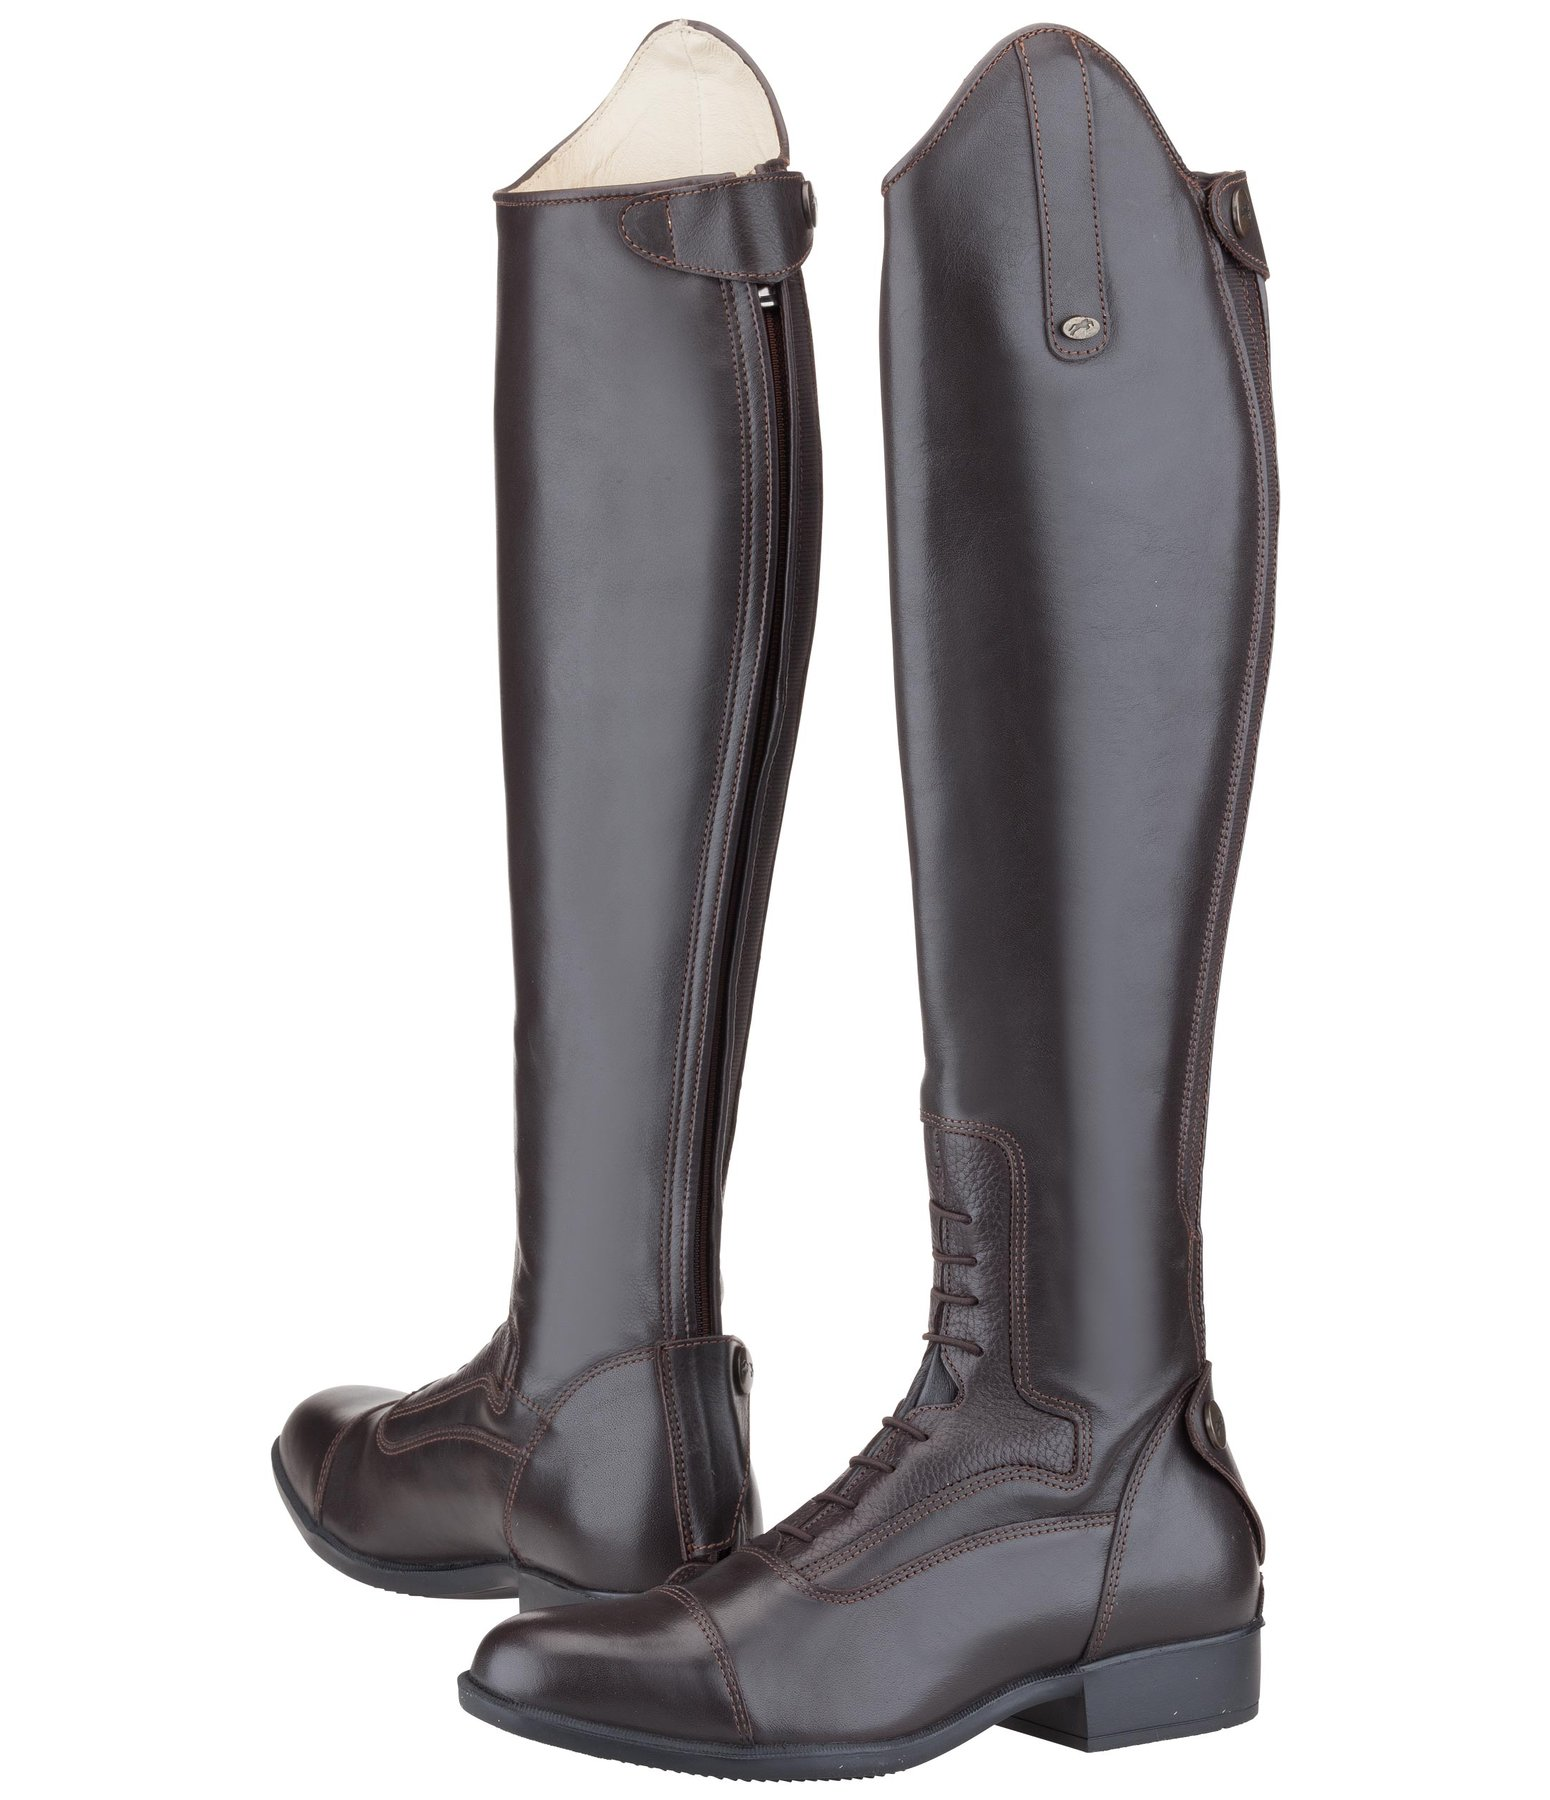 Reitstiefel Milano chocolate